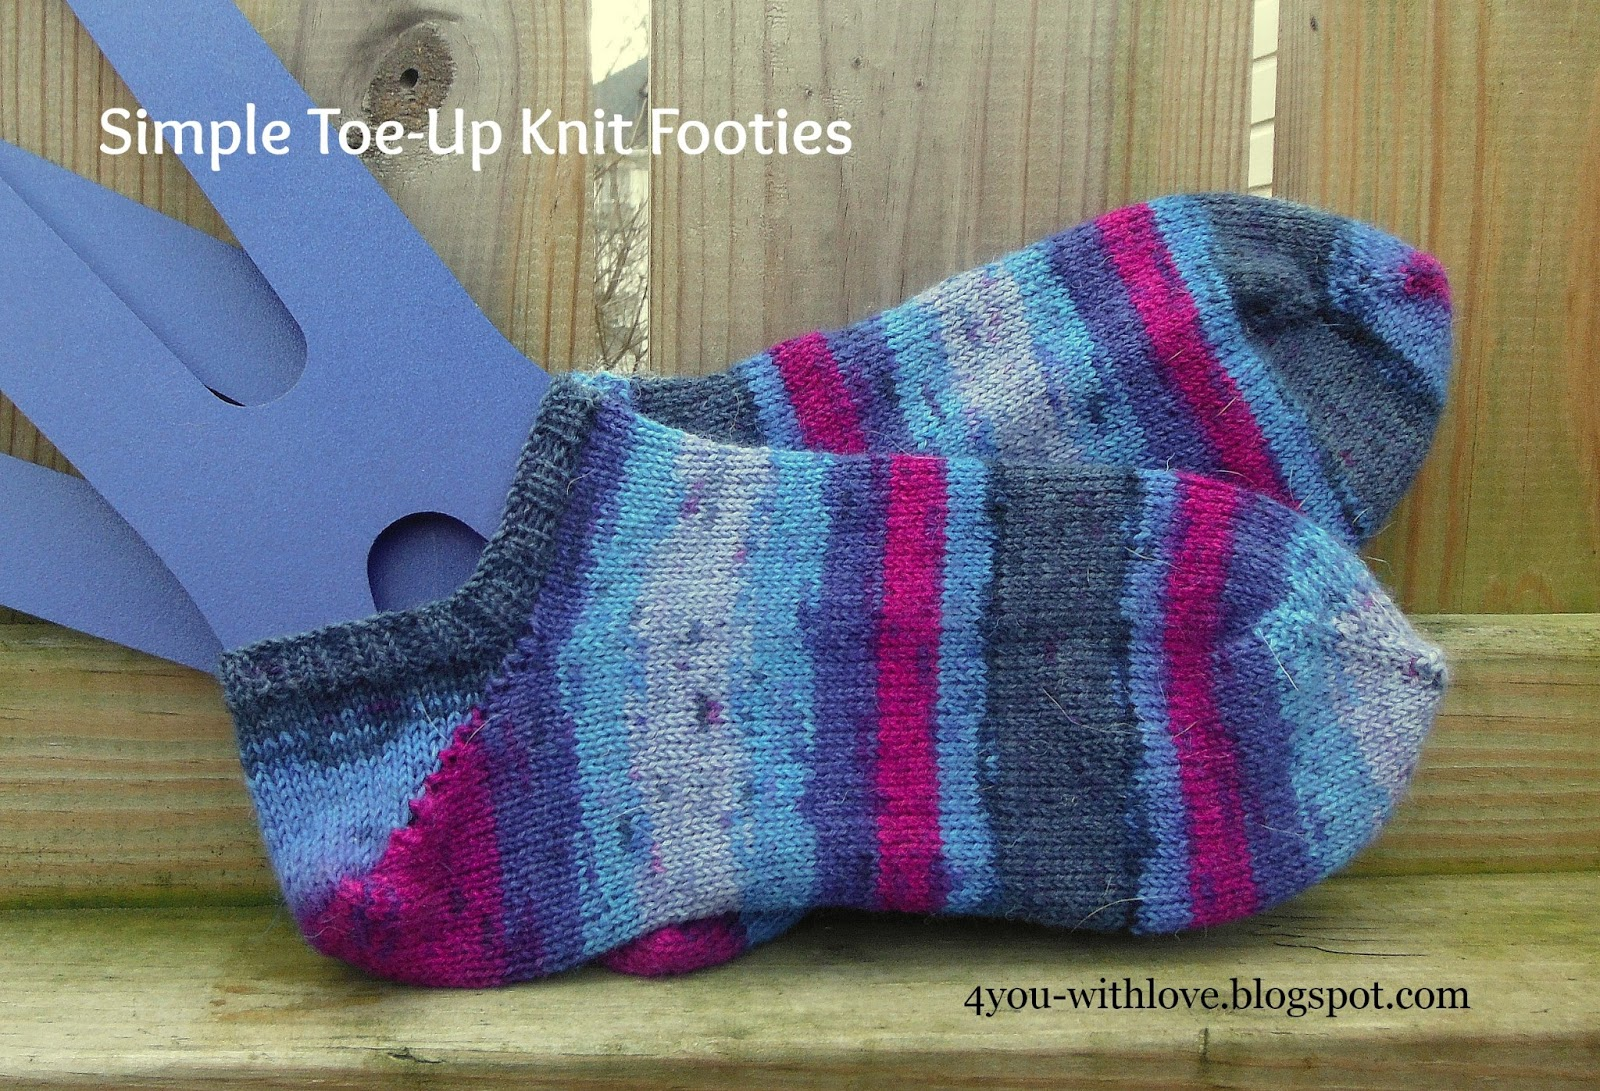 Knitting Pattern Reading Socks : Simple Toe Up Knit Footies - 4 You With Love